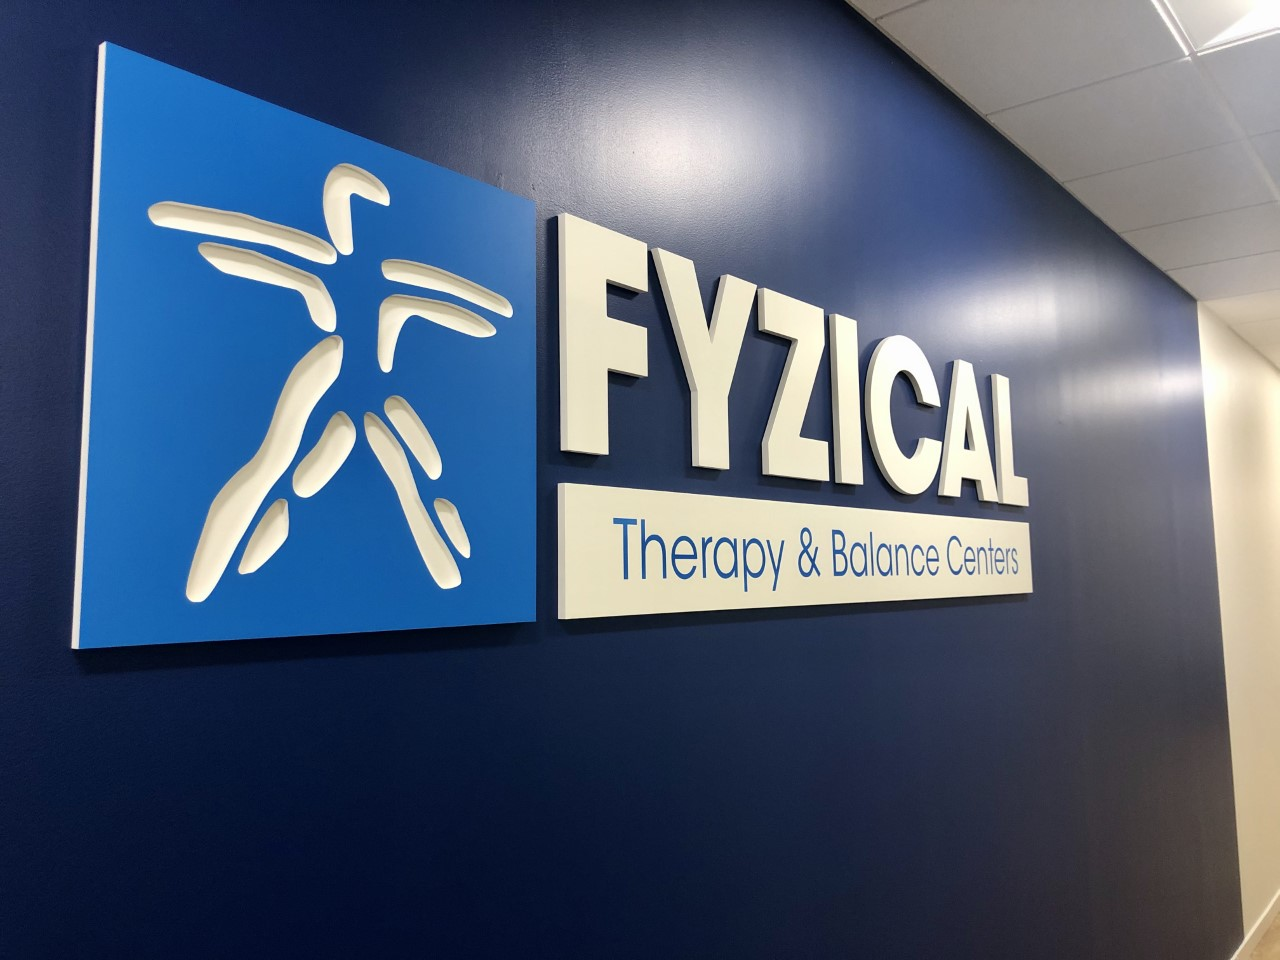 Why Should I Do my Physical Therapy at Fyzical?